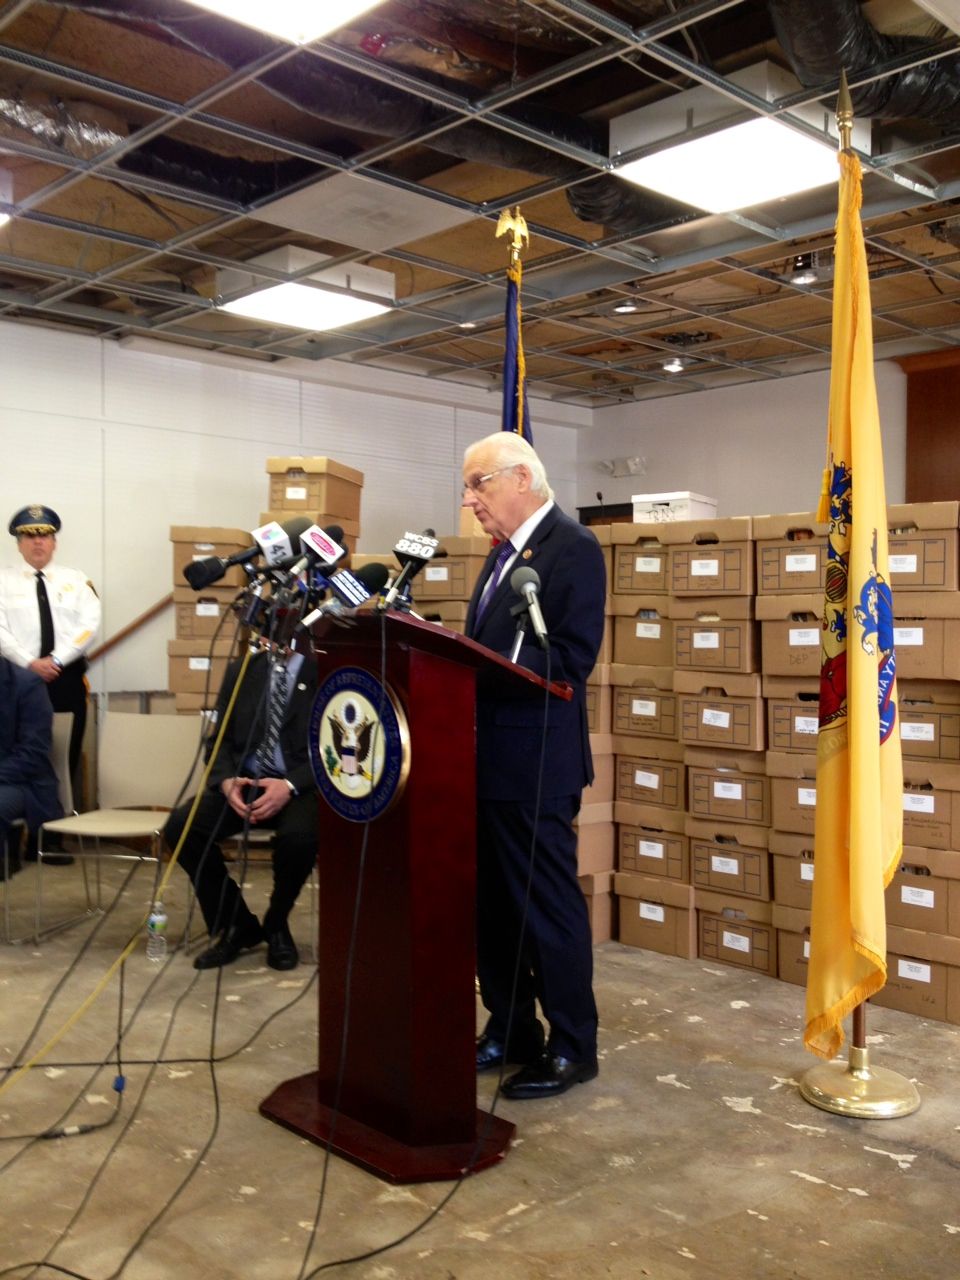 Sequester cuts would wreak havoc in N.J., Pascrell warns